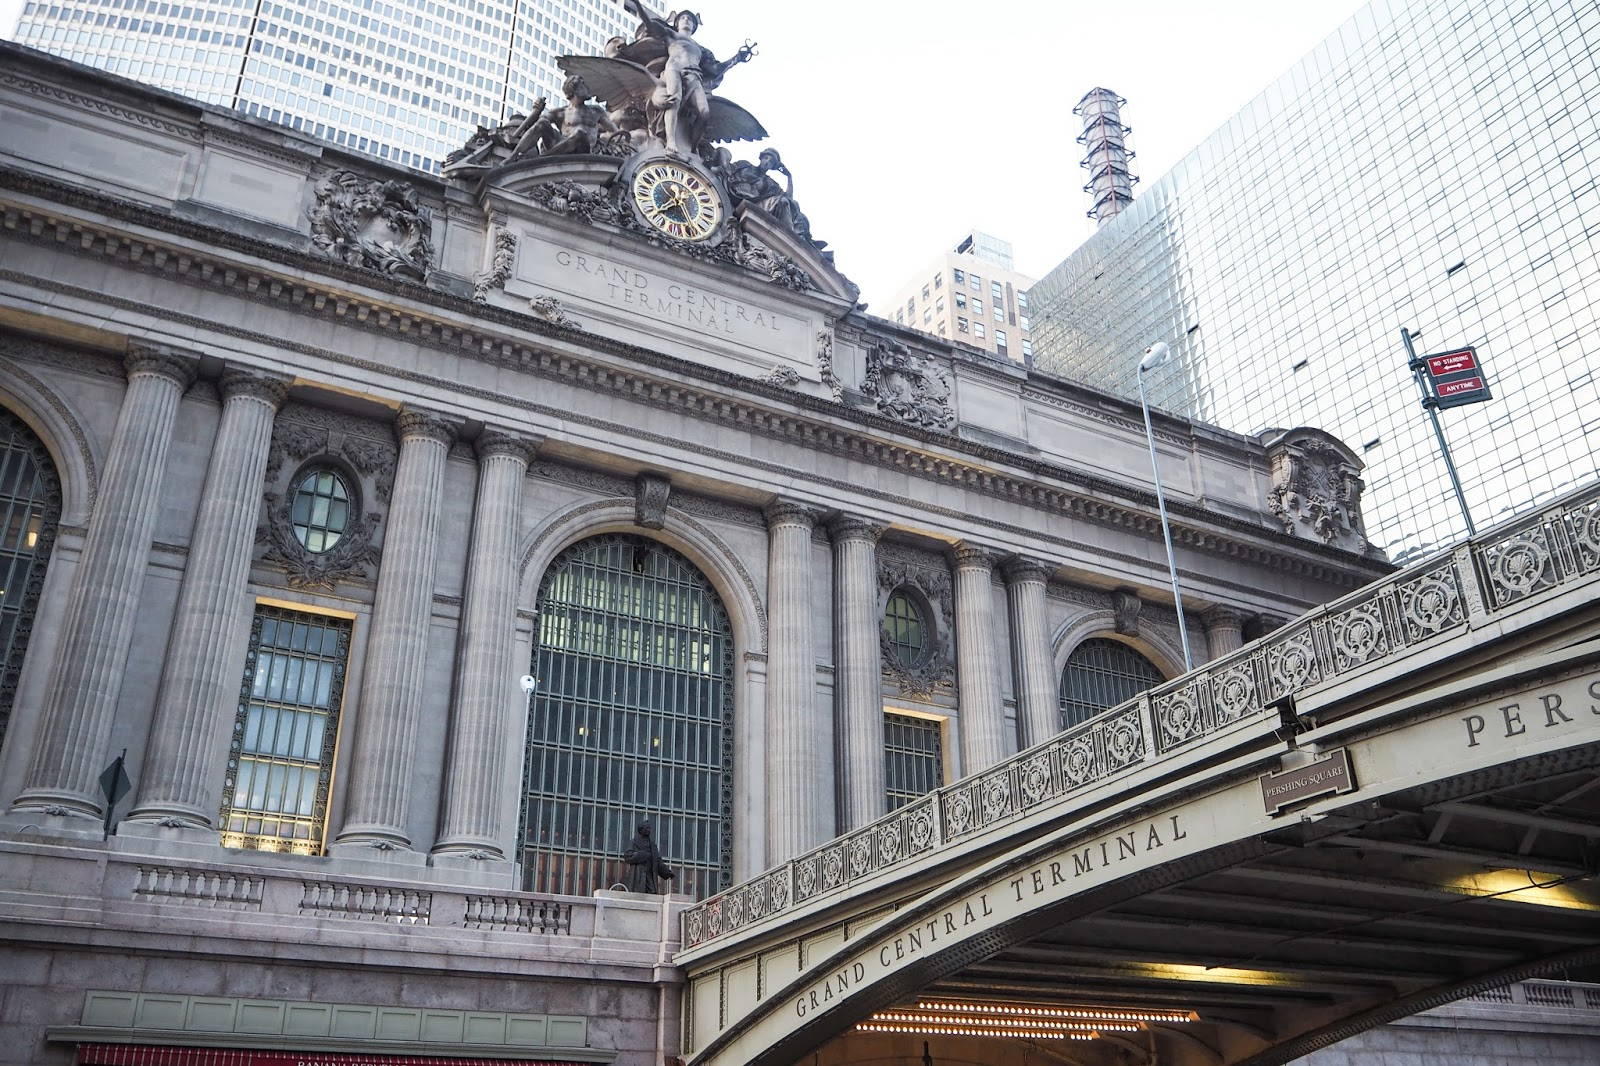 The outside of Grand Central Statio